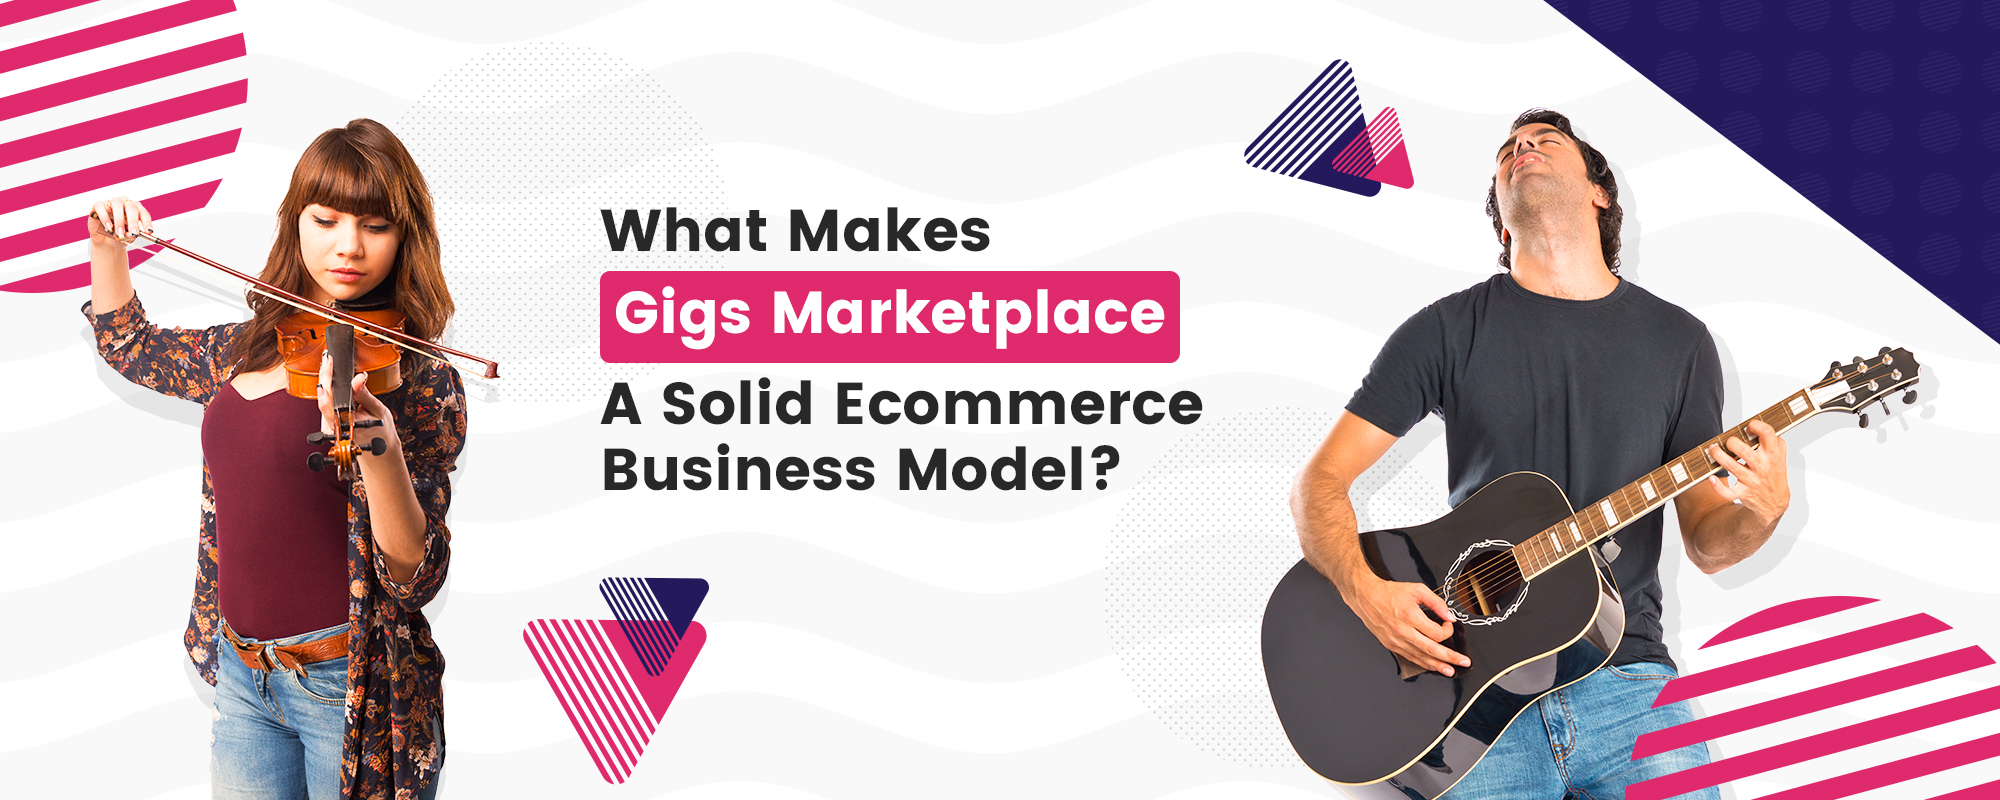 What Makes Gigs Marketplace a Solid Ecommerce Business Model?